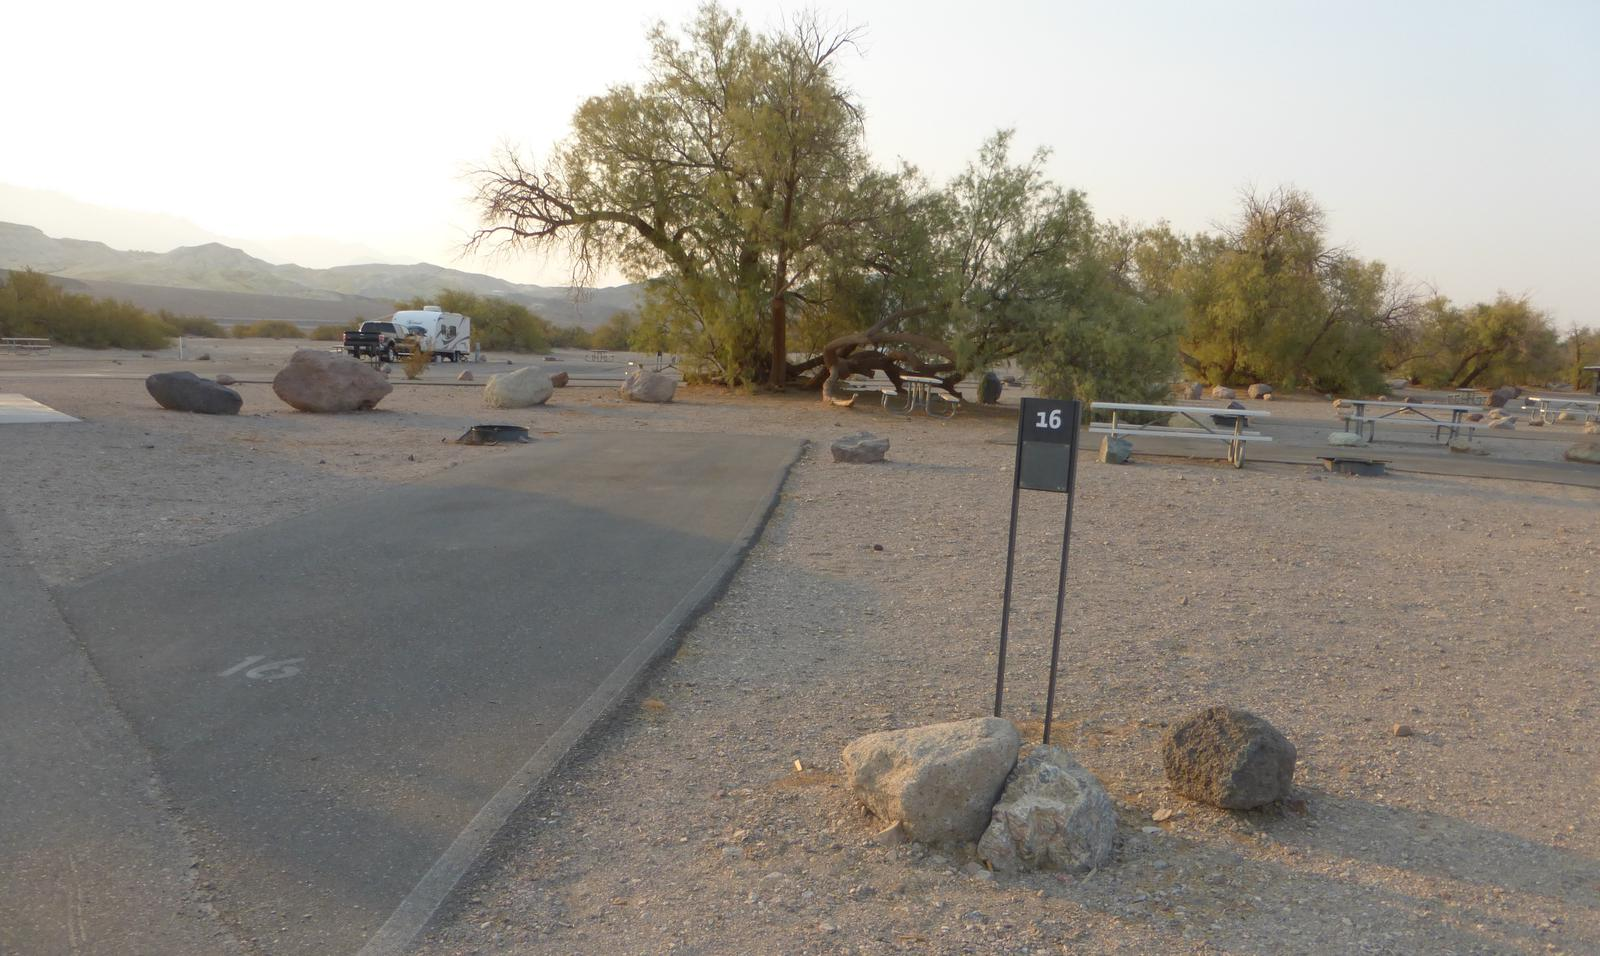 Furnace Creek Campground standard nonelectric site #16 with picnic table and fire ring.